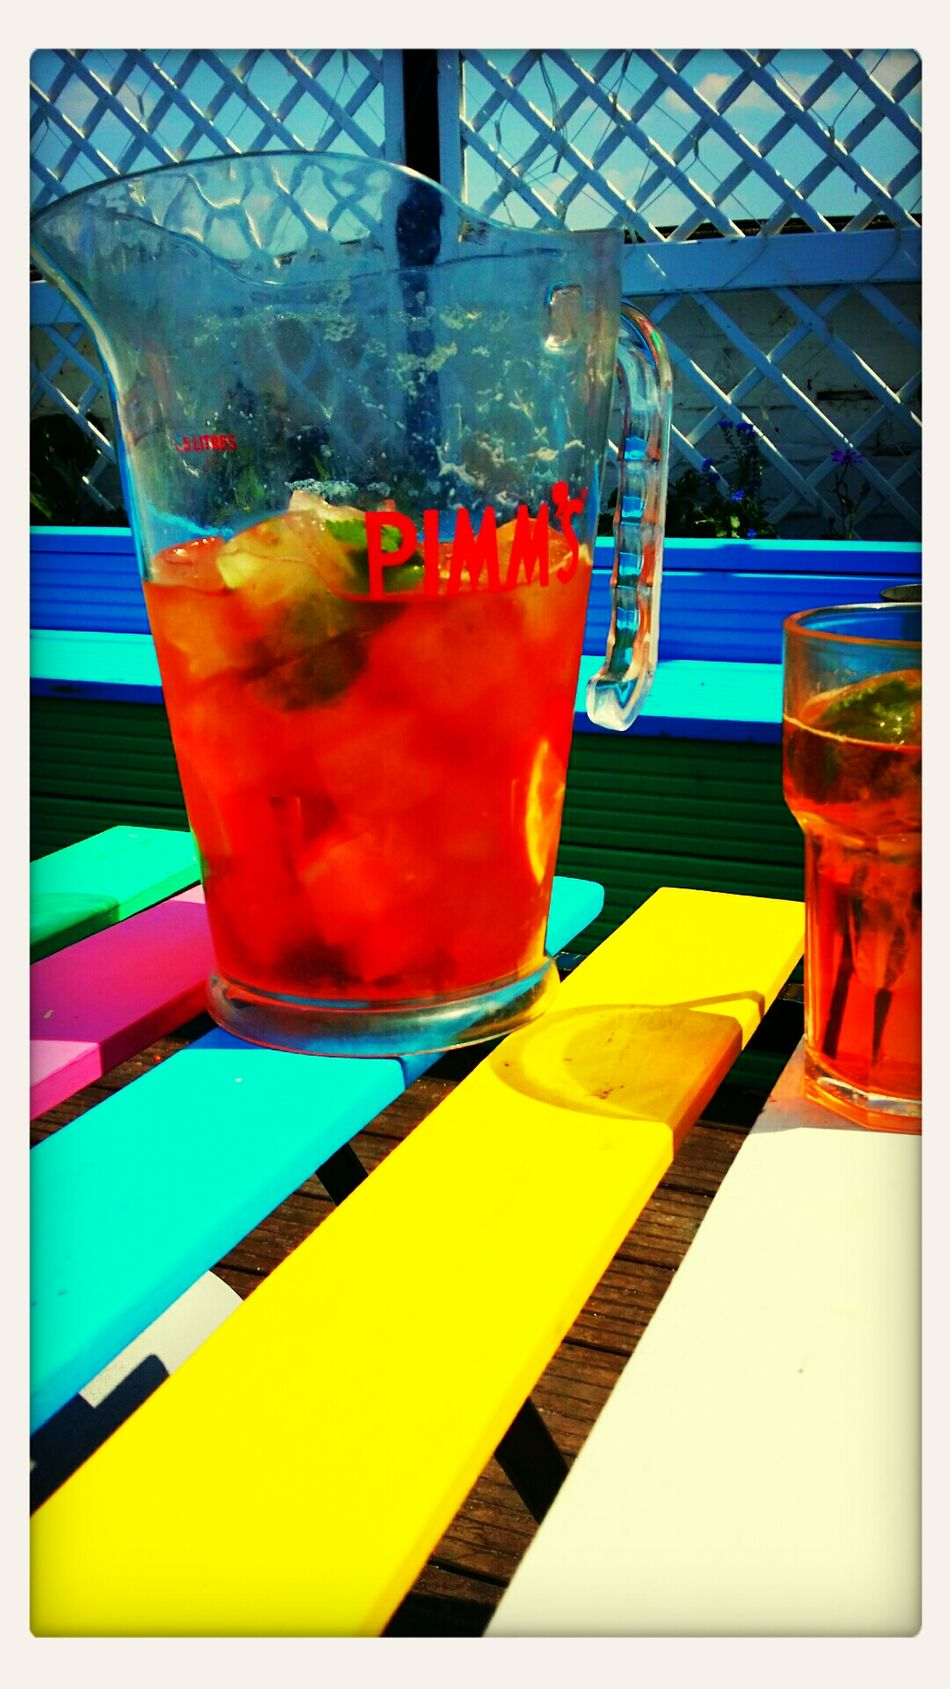 1st rooftop pimms